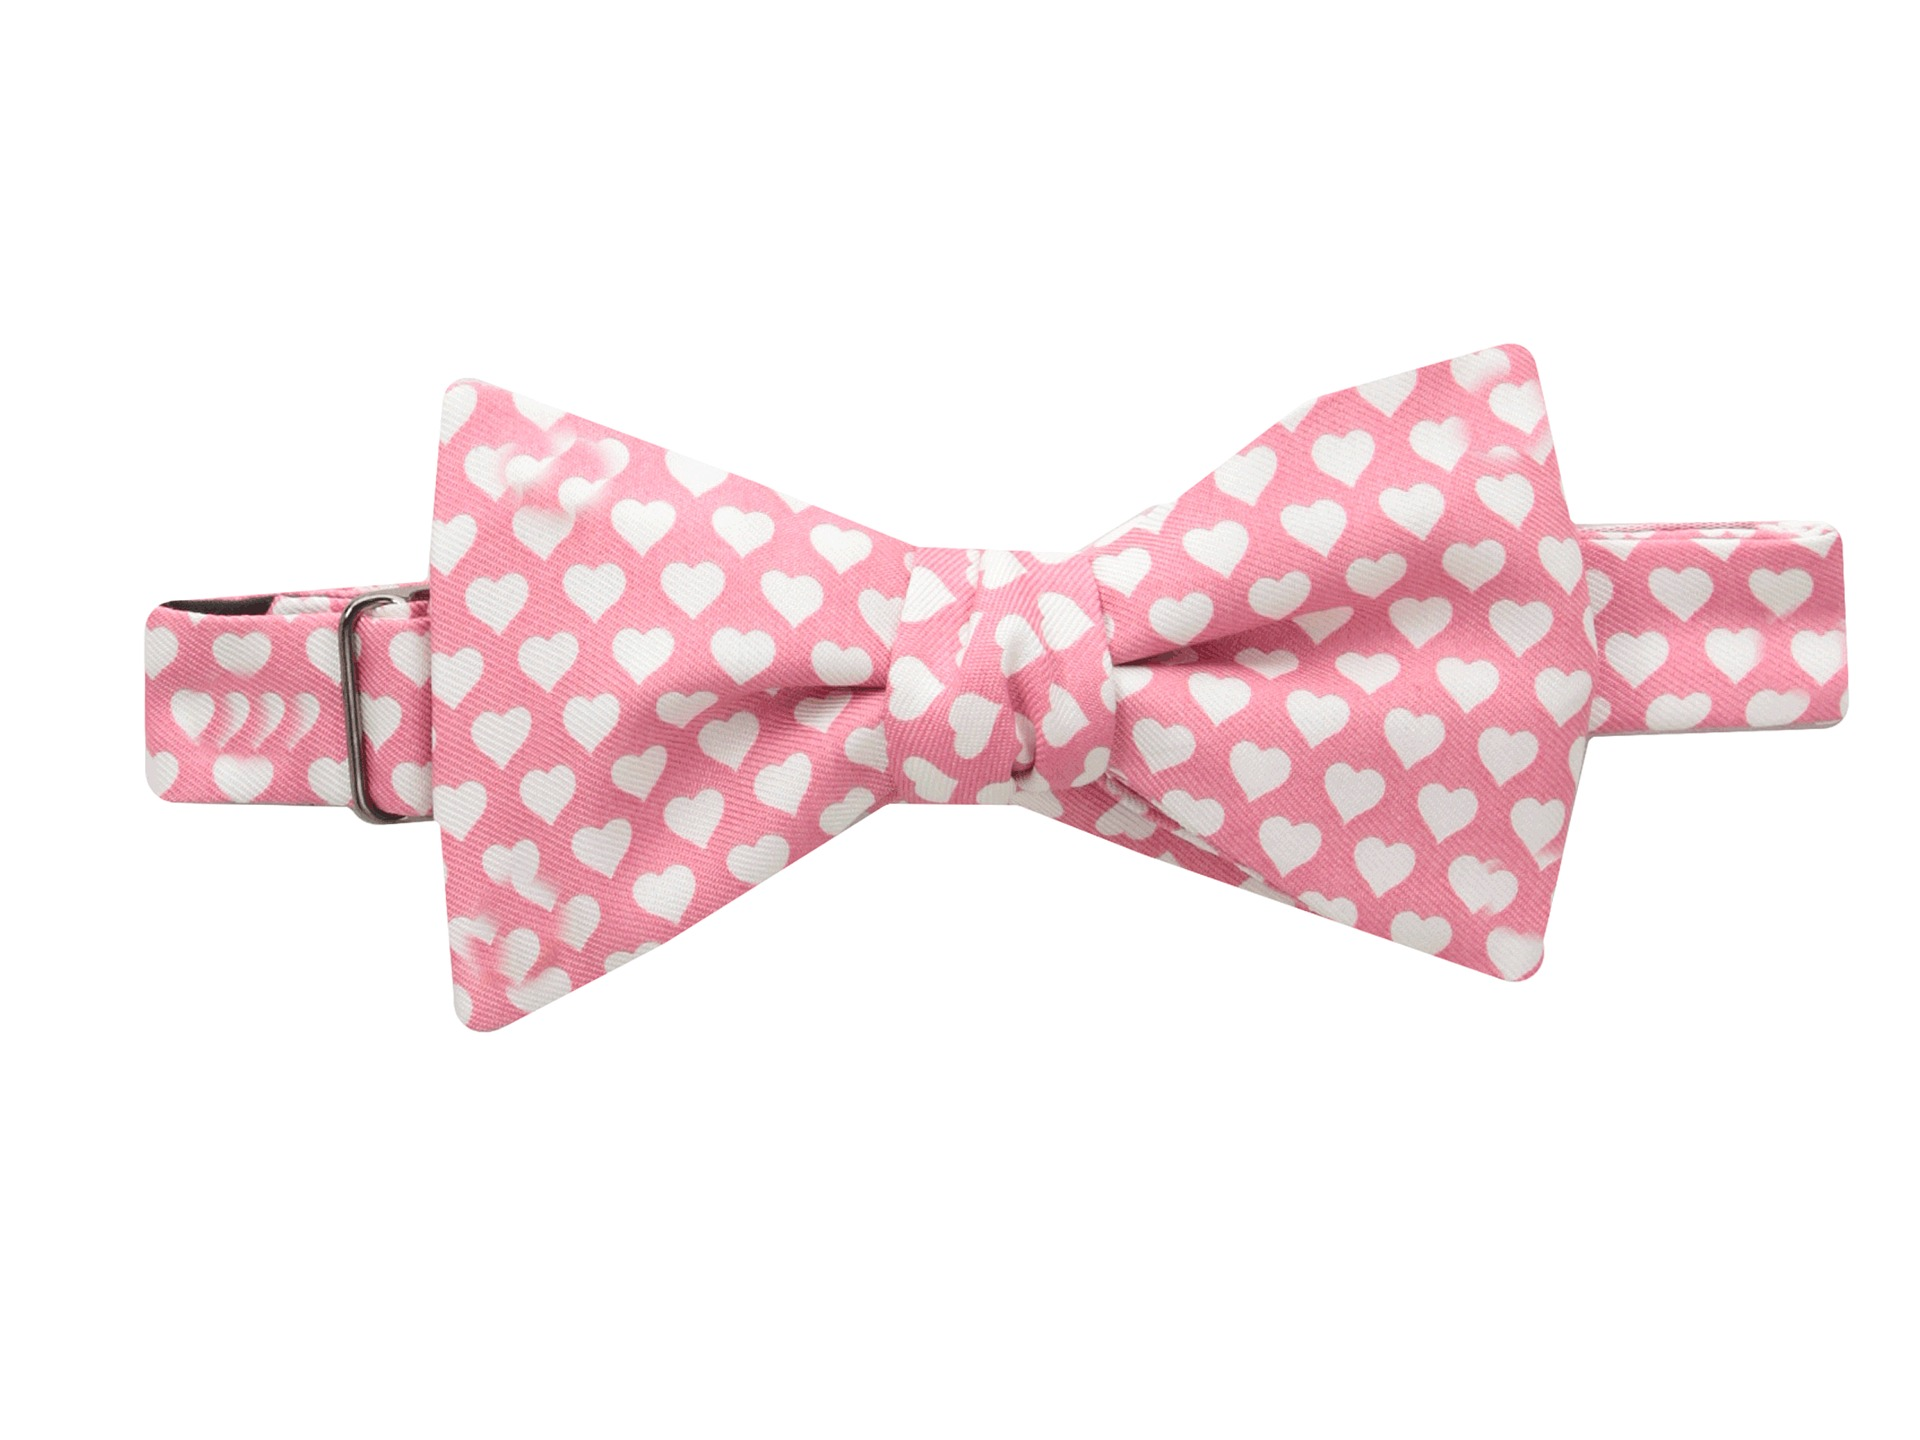 Vineyard Vines Hearts Printed Bow Tie Light Pink   Shipped ...